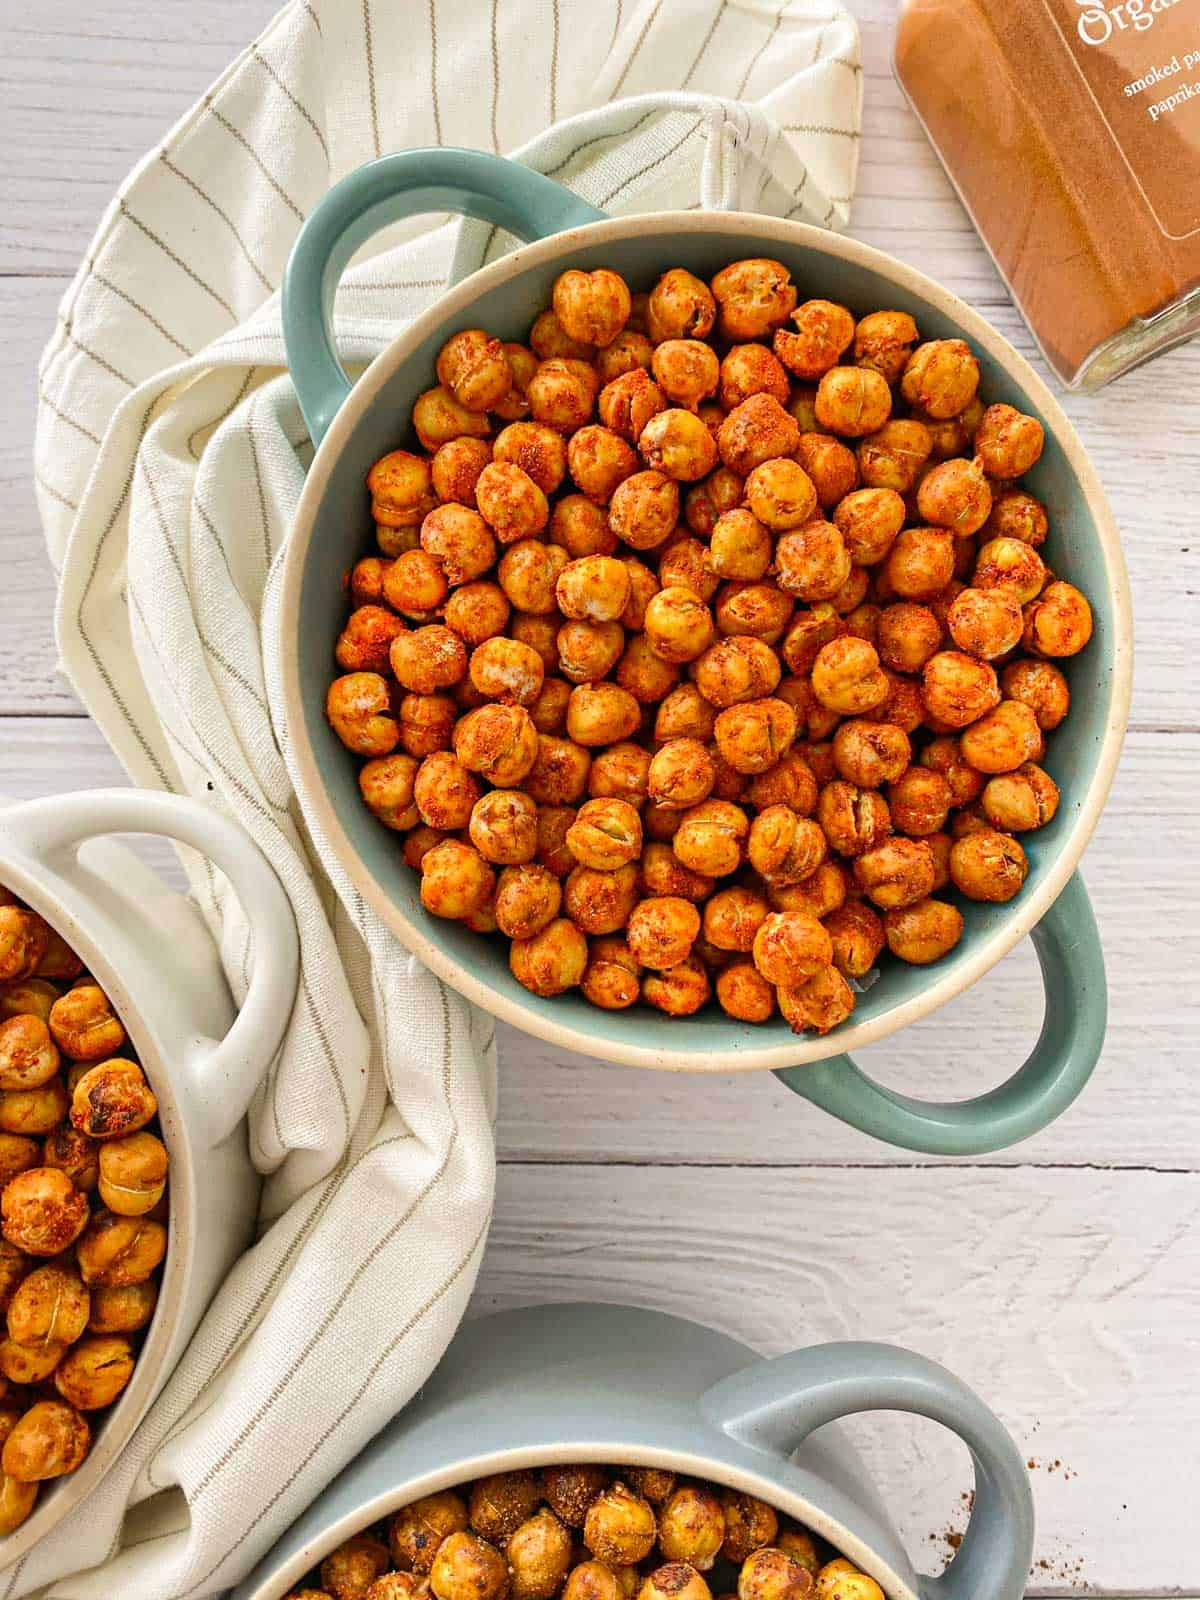 Smoky chickpeas in blue bowl with handles.